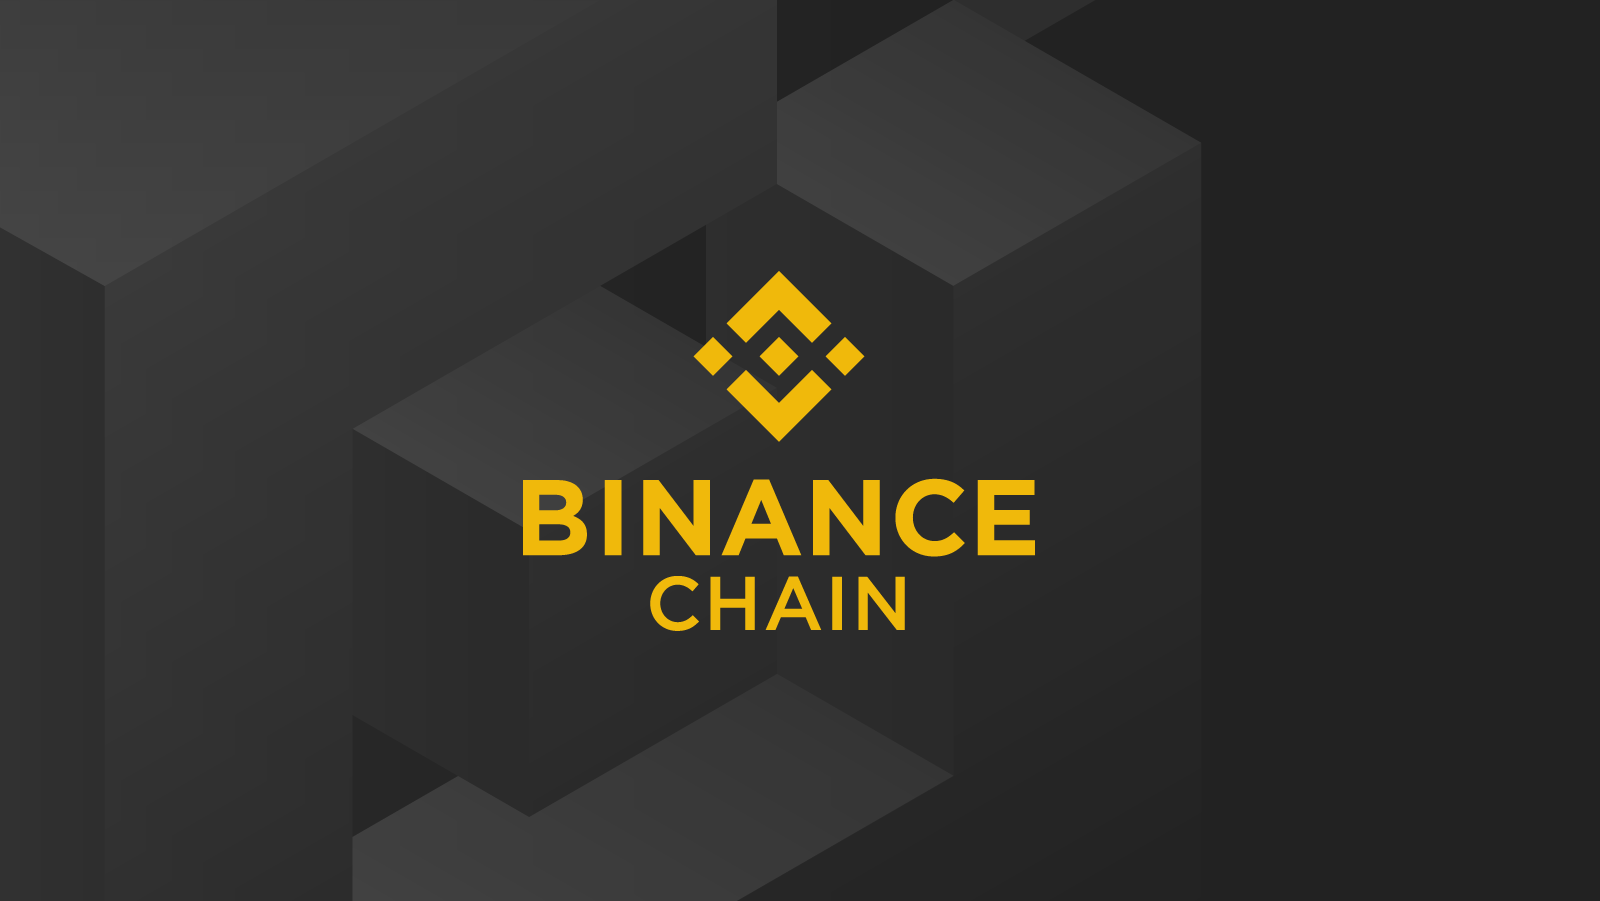 binance chain dex